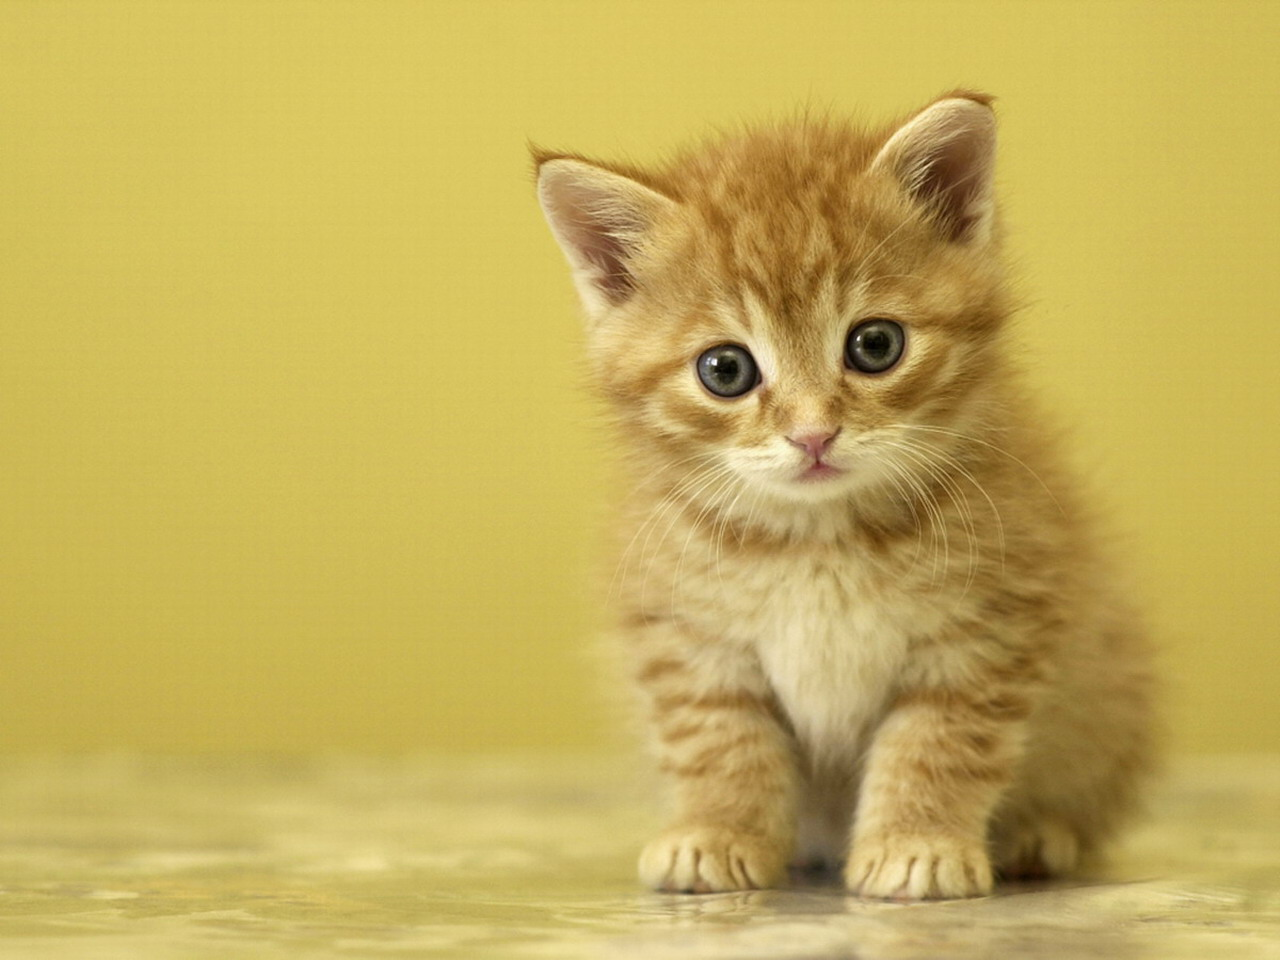 Cute Baby Kittens 9571 Hd Wallpapers in Animals   Imagescicom 1280x960